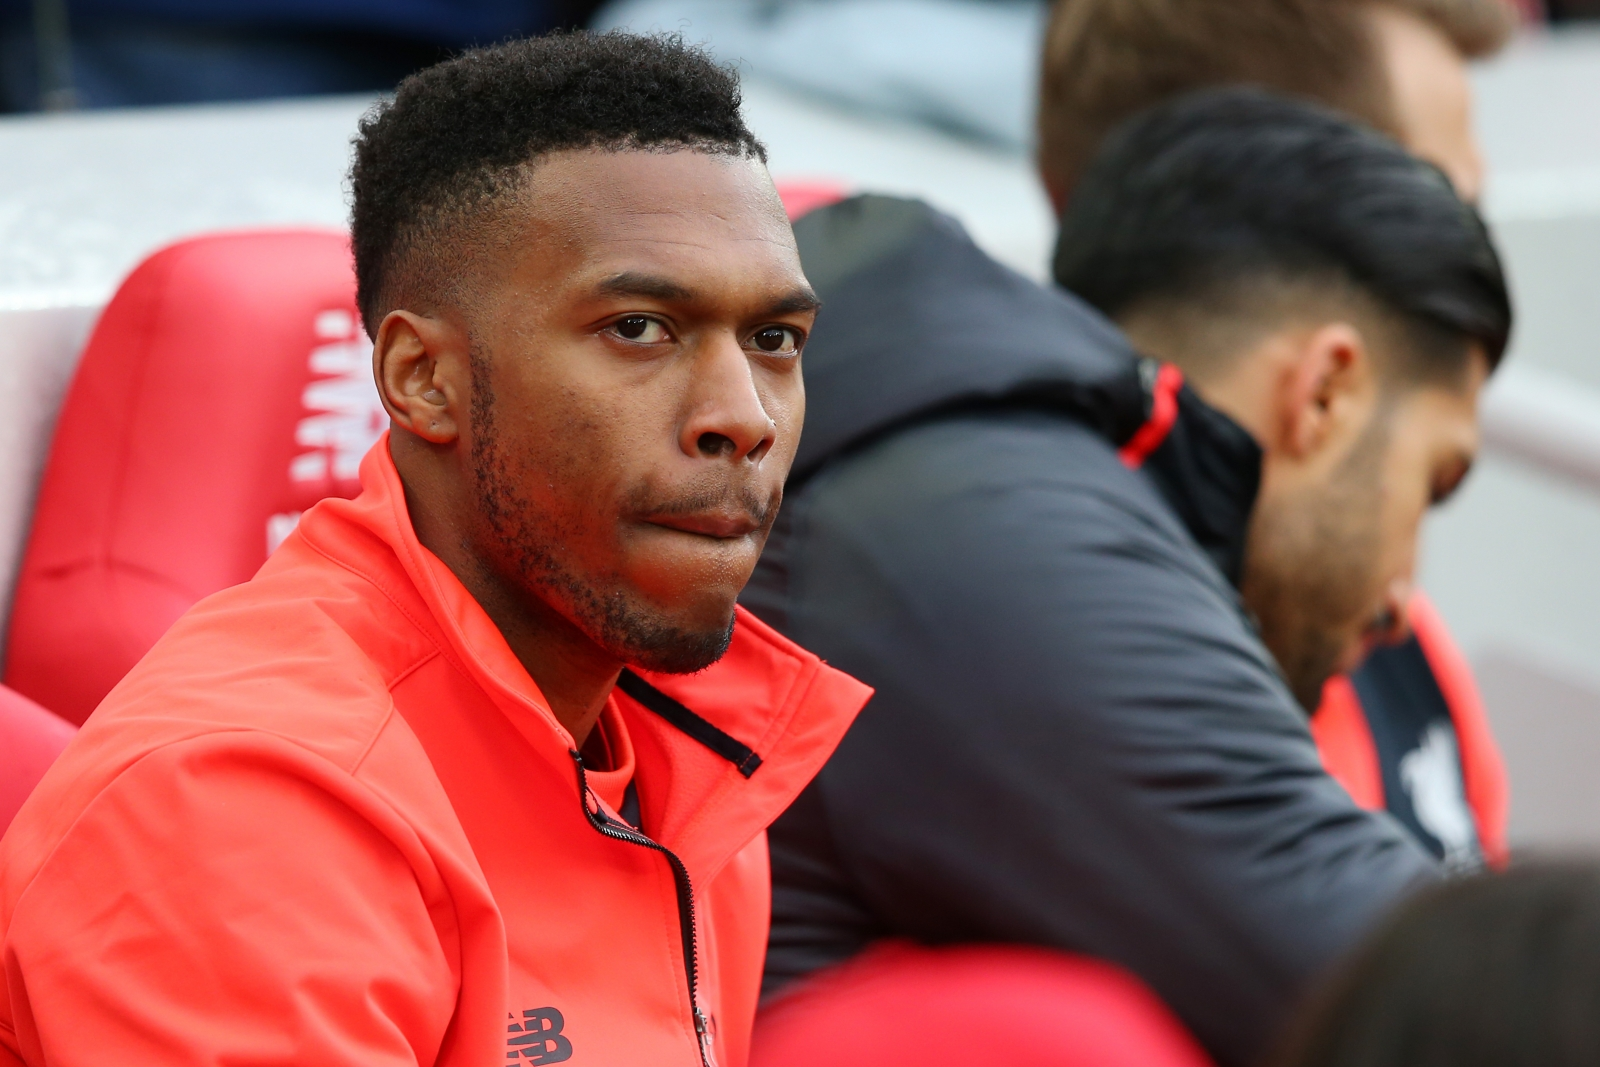 Daniel Sturridge